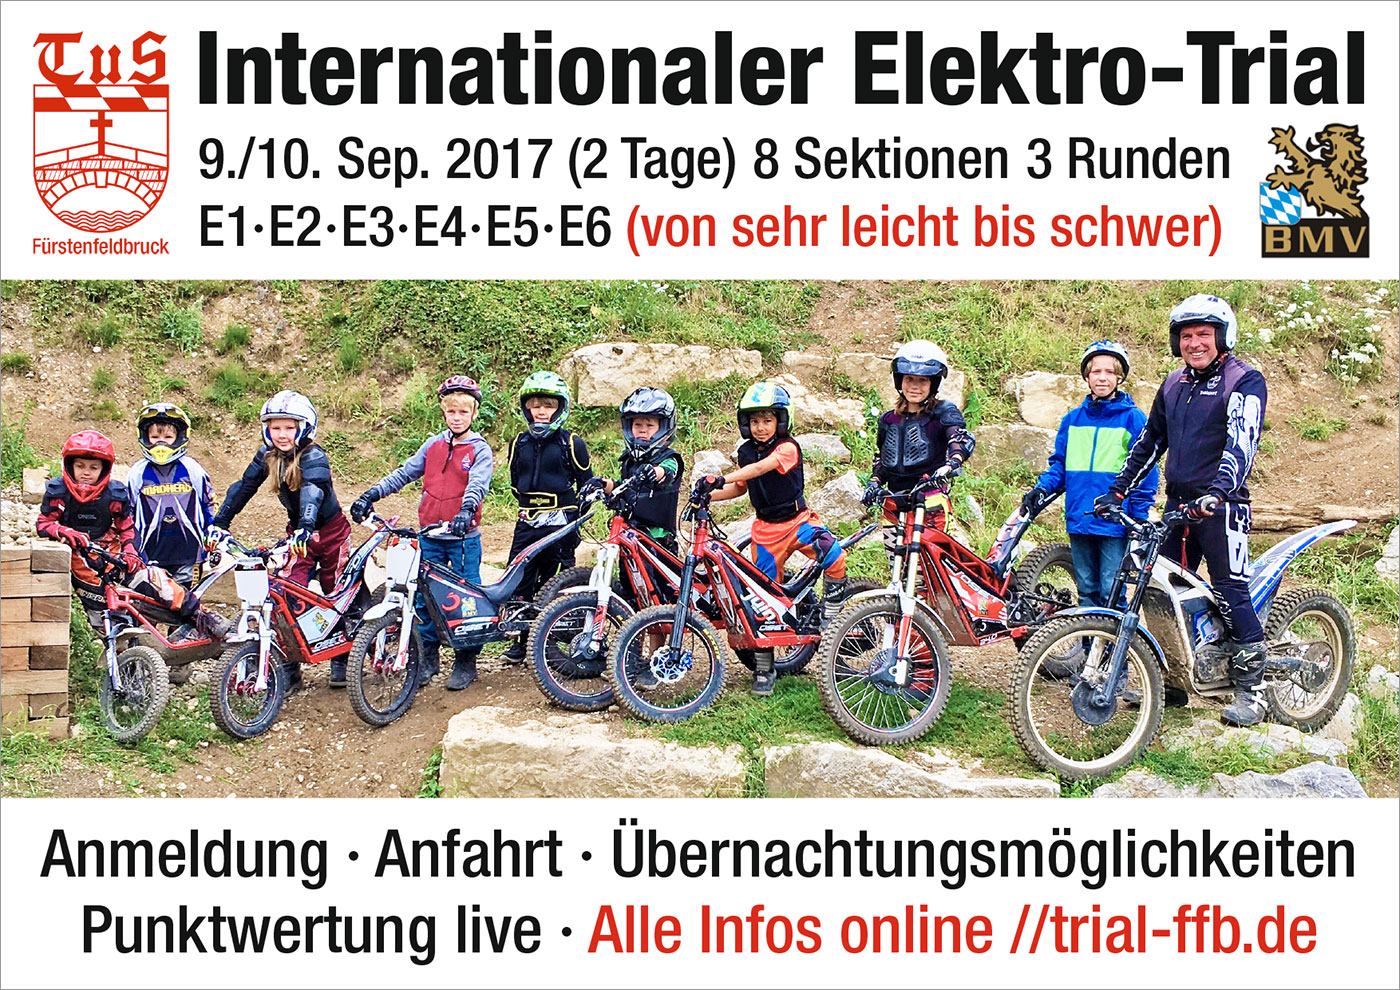 Internationaler Elektro-Trial 9./10. September 2017